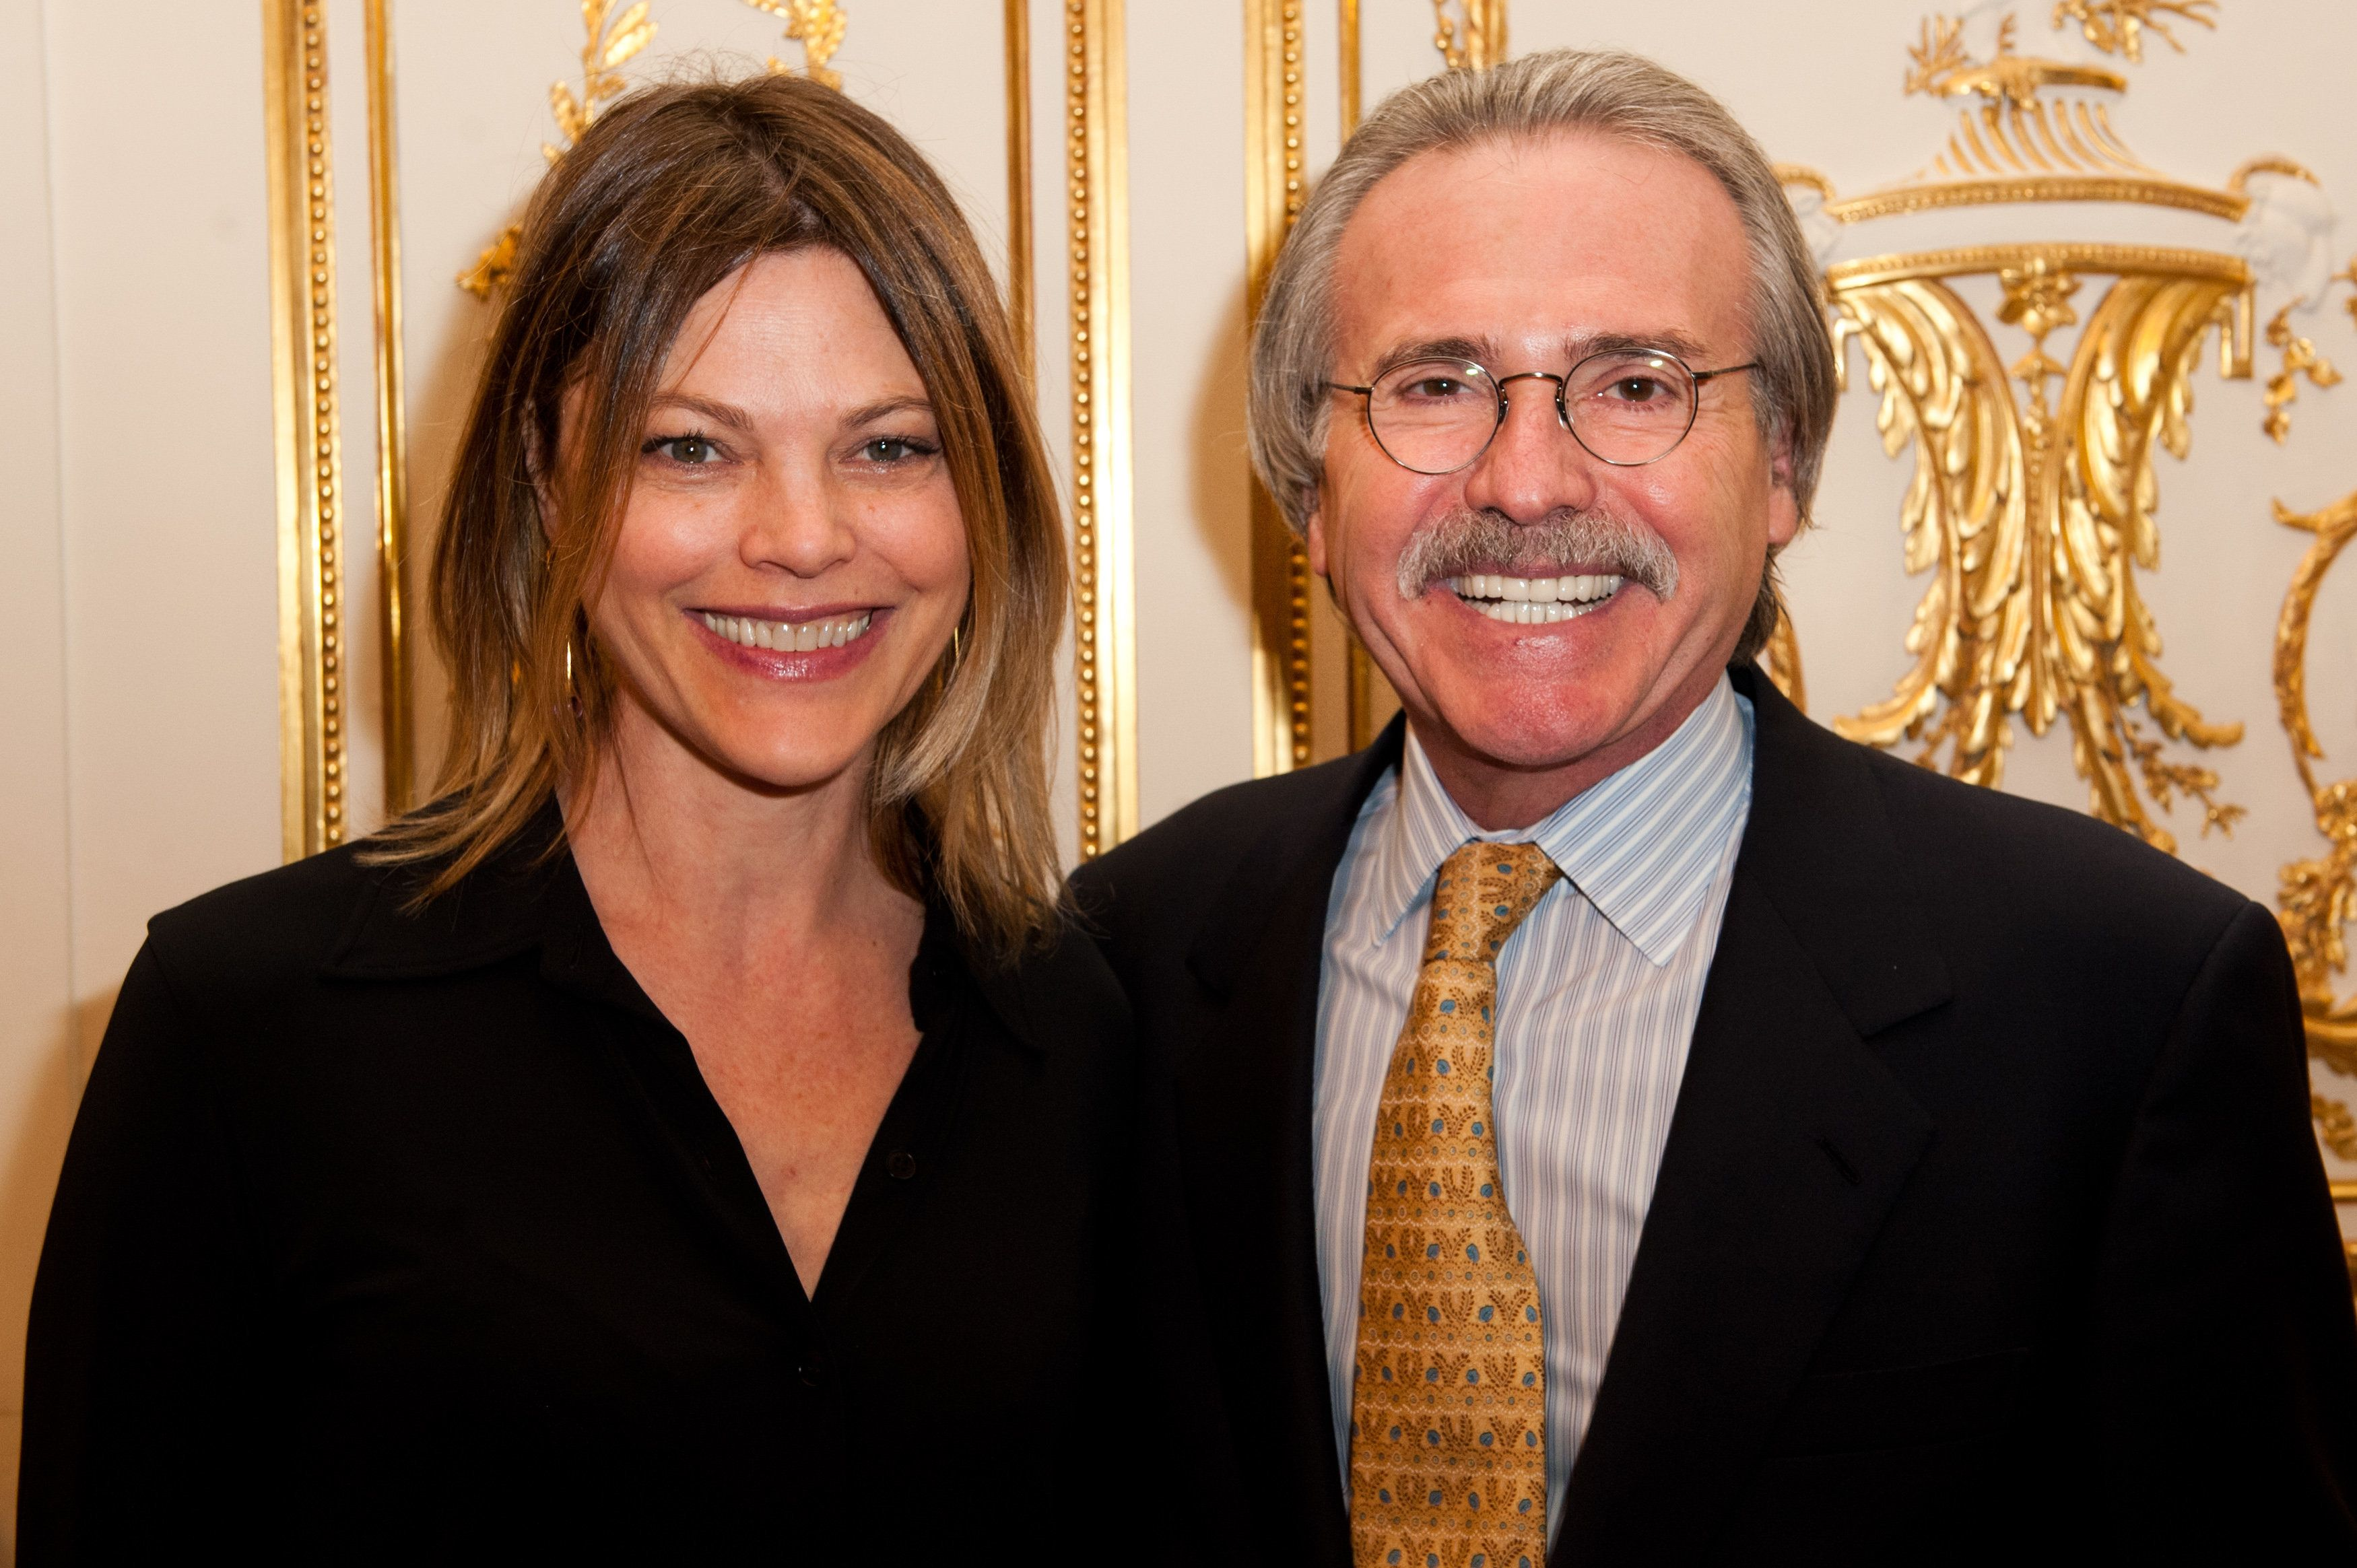 David Pecker and Alexandra Kazan pictured in 2012.